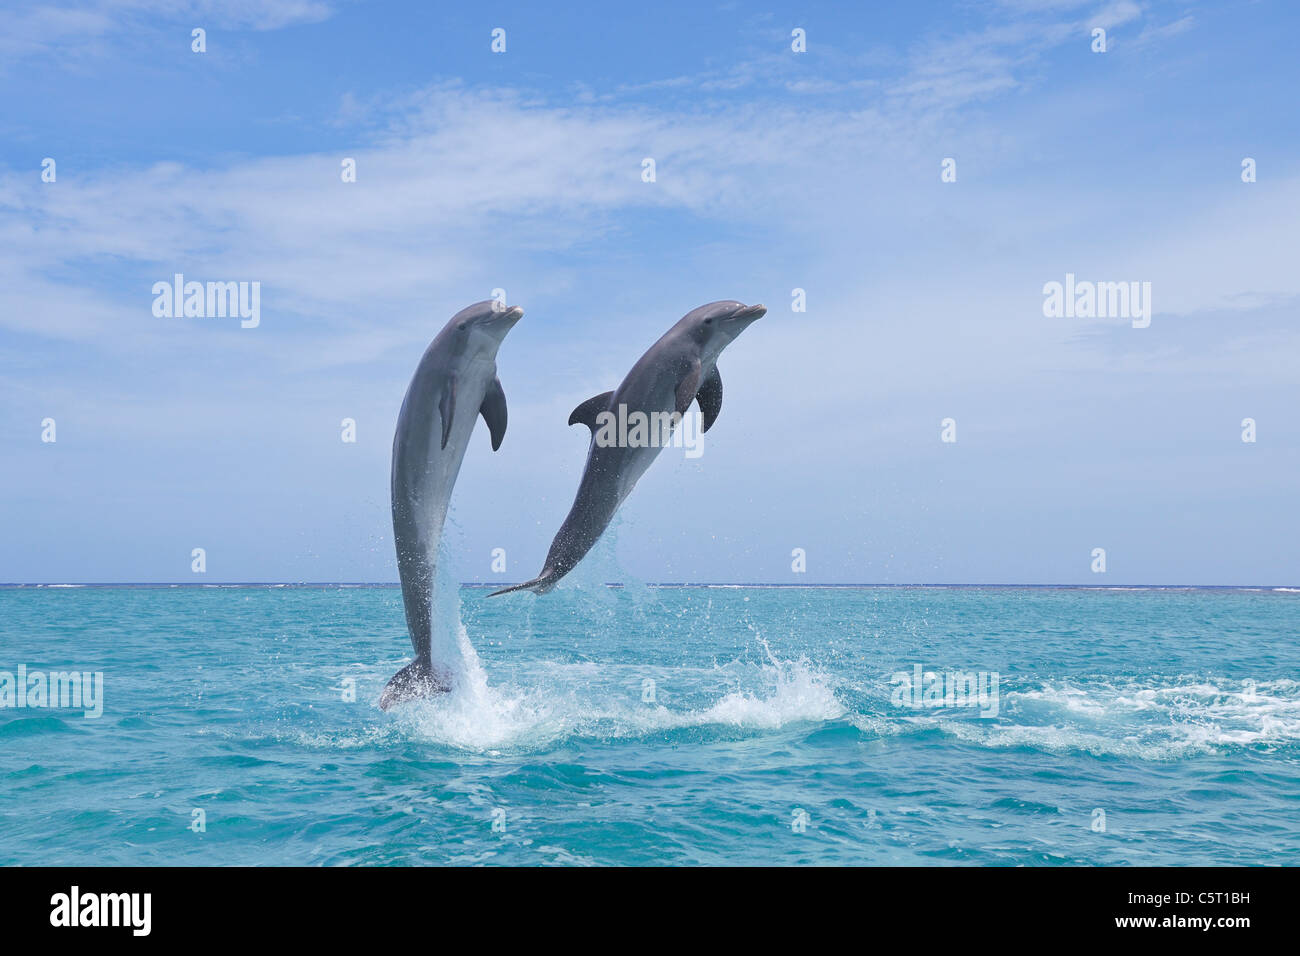 Latin America, Honduras, Bay Islands Department, Roatan, Caribbean Sea, View of bottlenose dolphins jumping in seawater Stock Photo